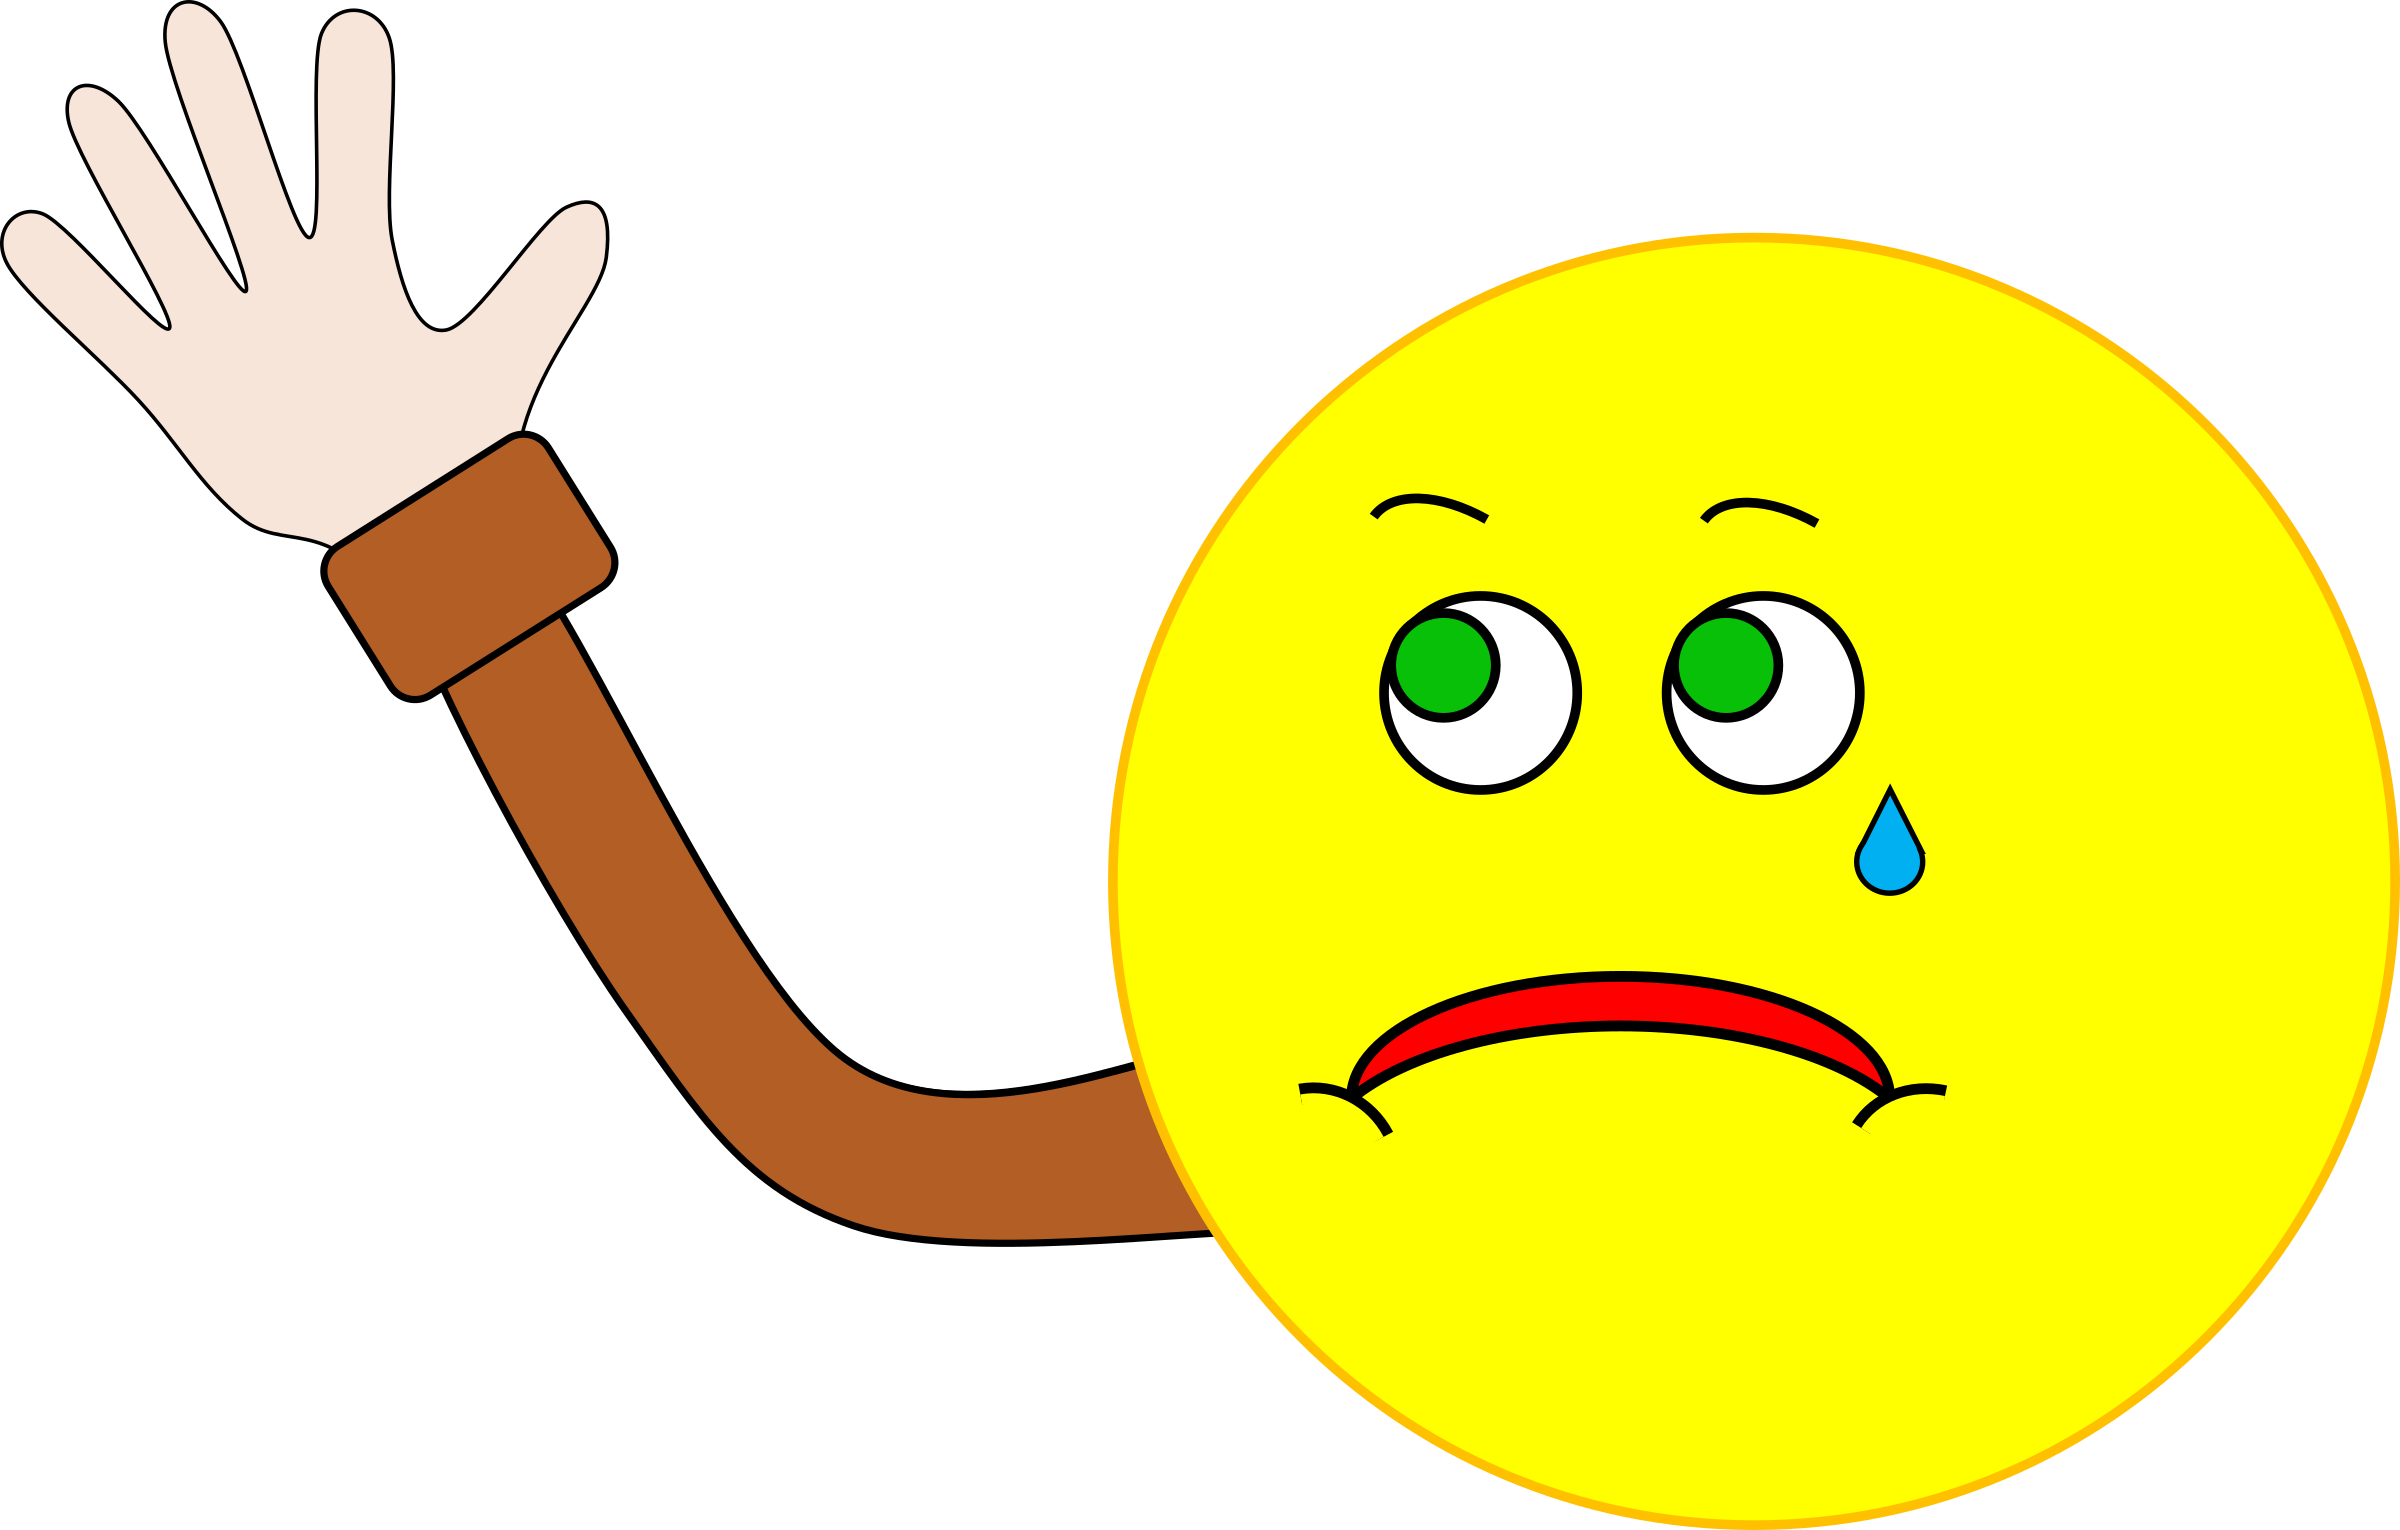 Hand clipart wave goodbye. Png hd waving transparent